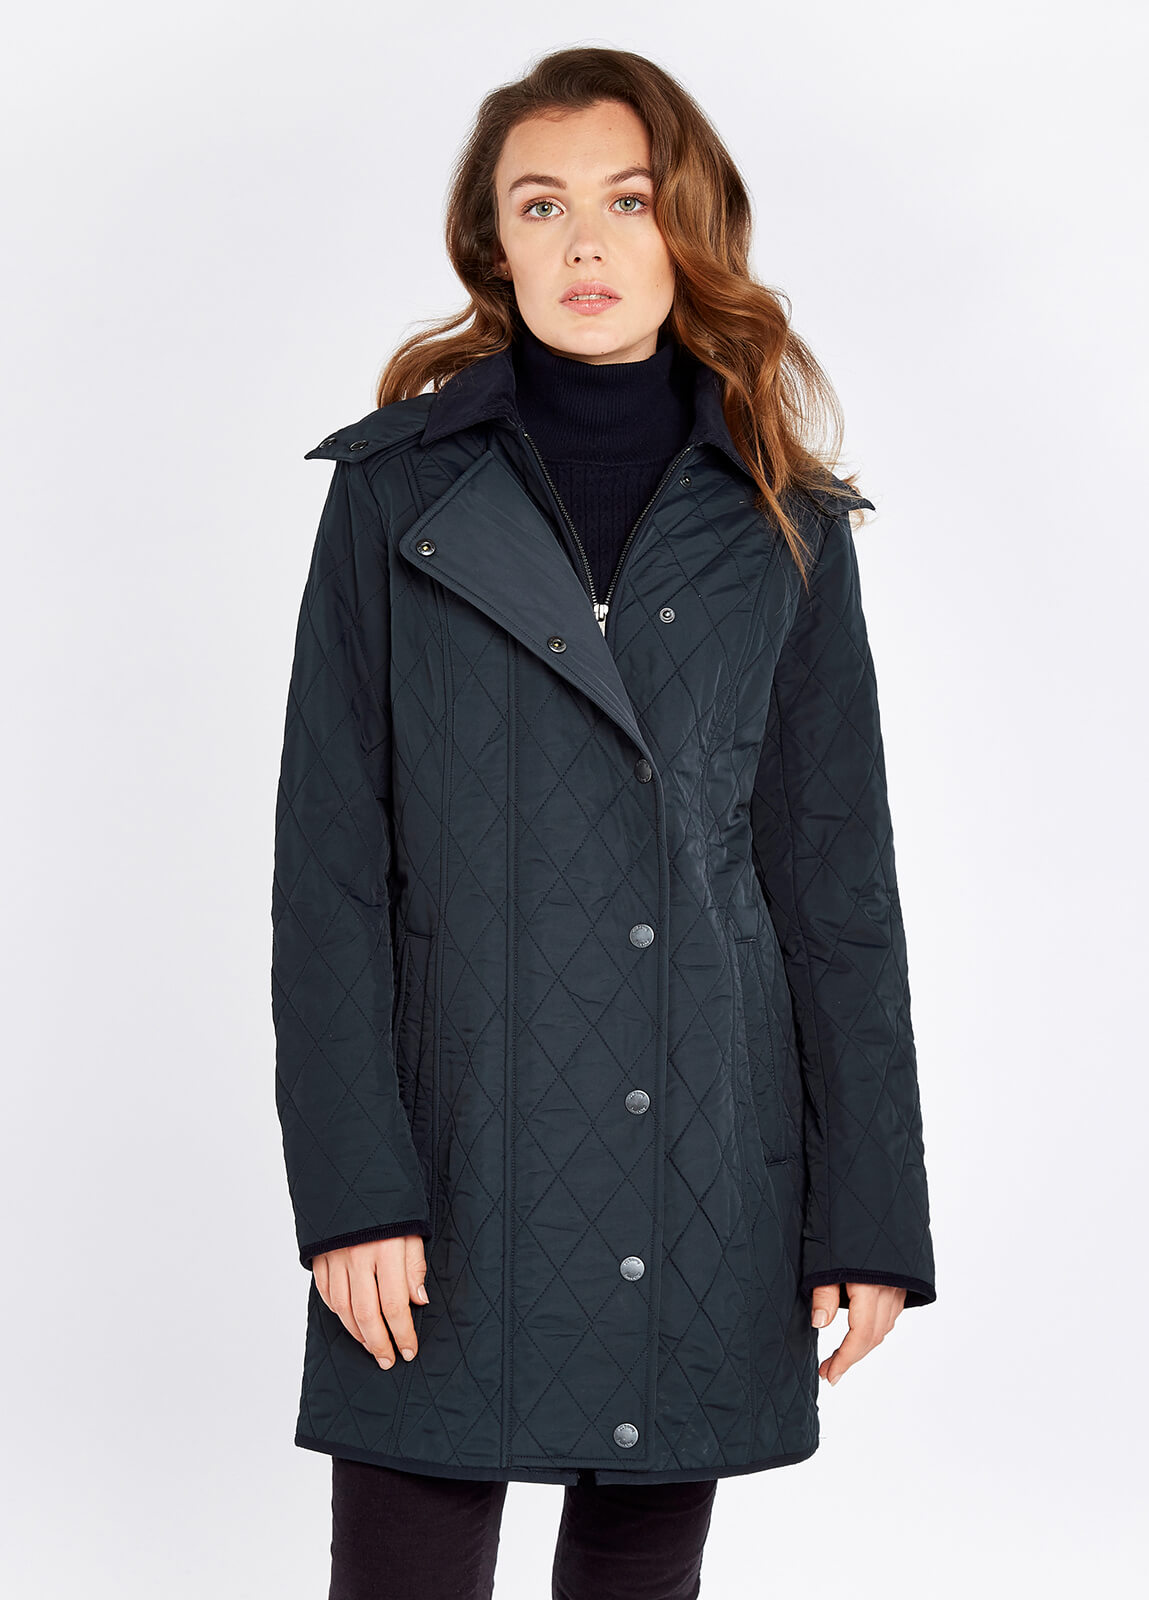 Jamestown Quilted Jacket - Navy